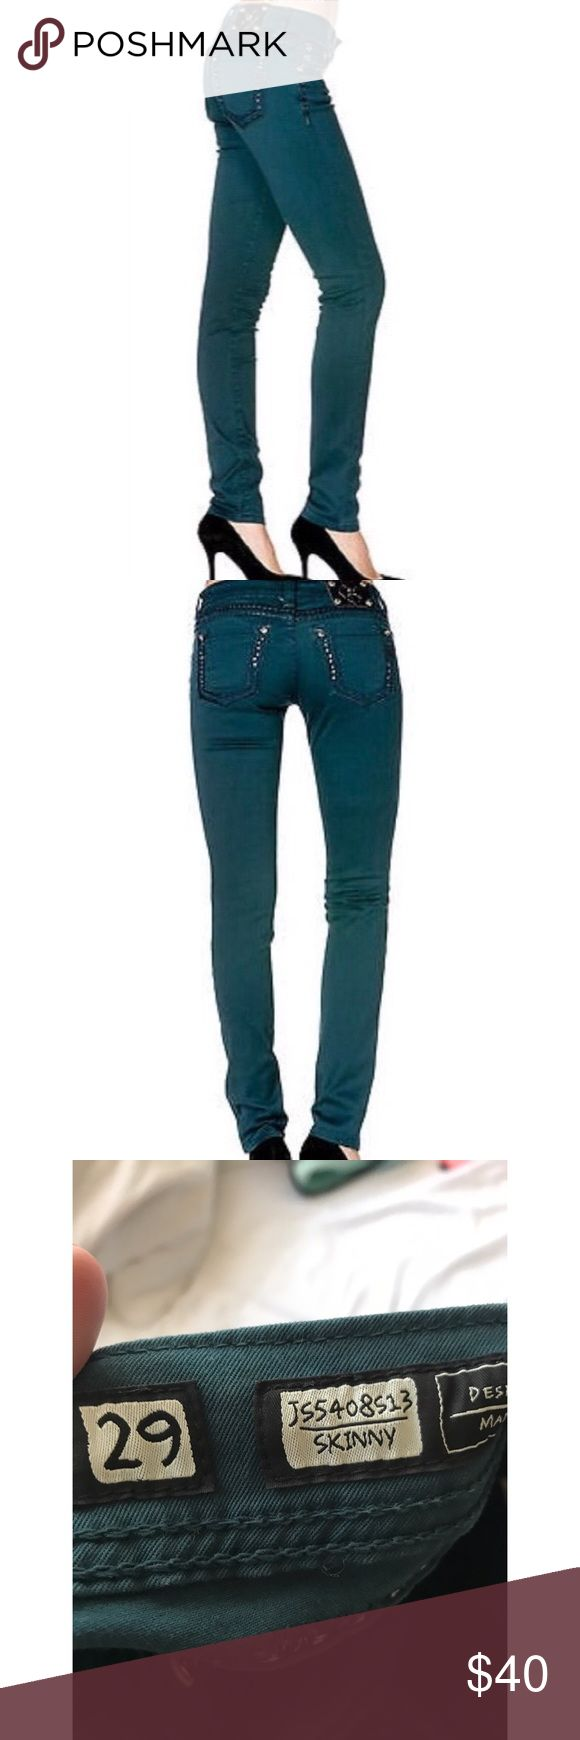 Miss Me Dark Teal Skinny Jeans with Embellishment Great condition Miss Me mid-rise skinny jeans in Dark Teal. Size 29. Cute embellishments on the back pockets! Miss Me Jeans Skinny